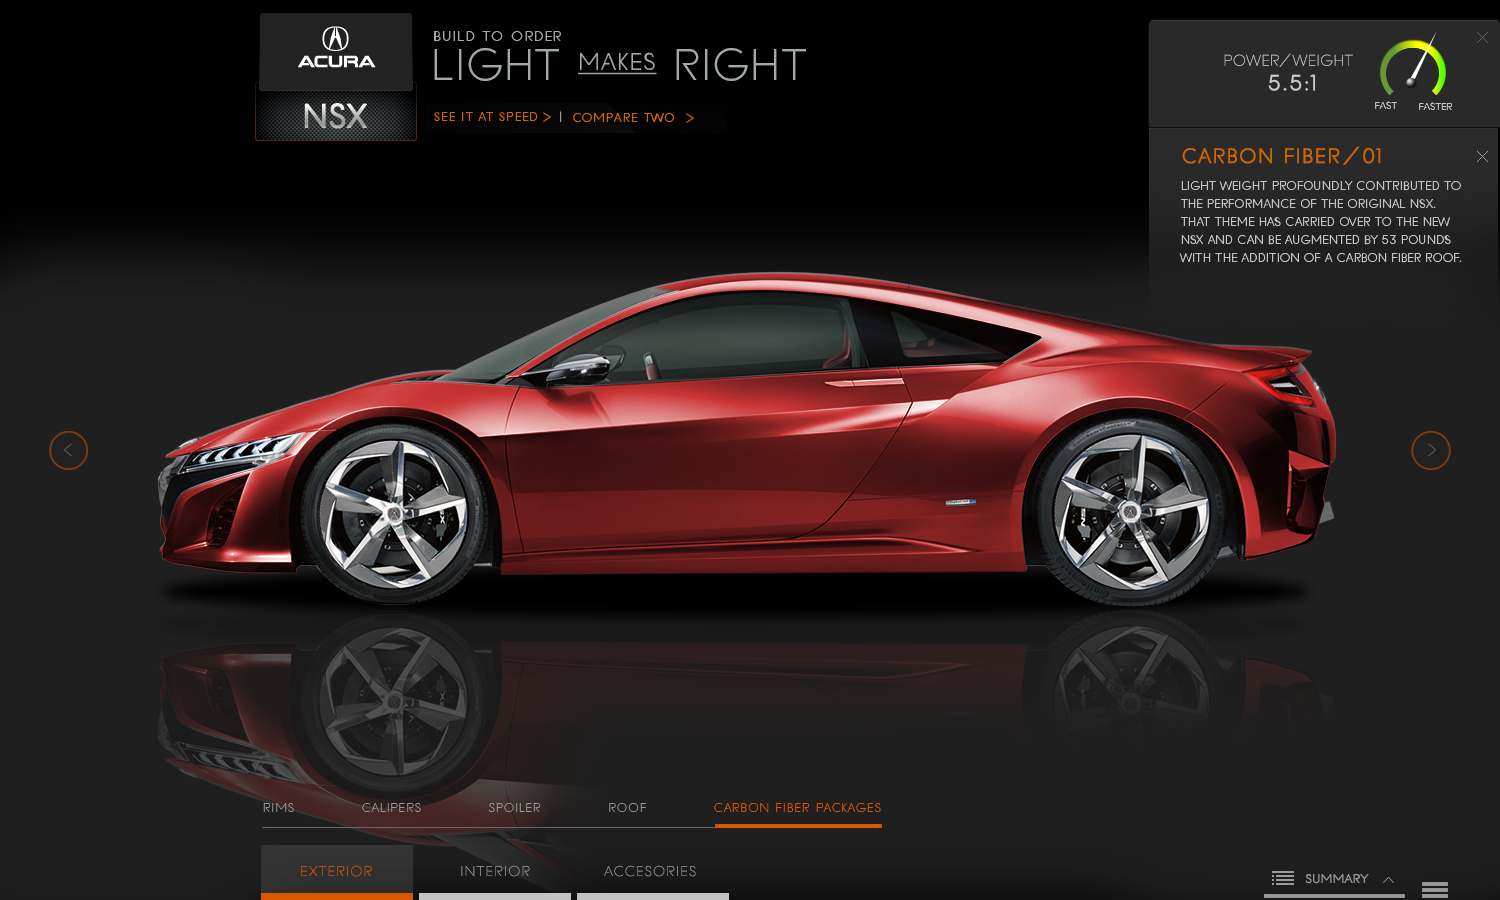 Acura_NSX_BTO_Concept_26.png